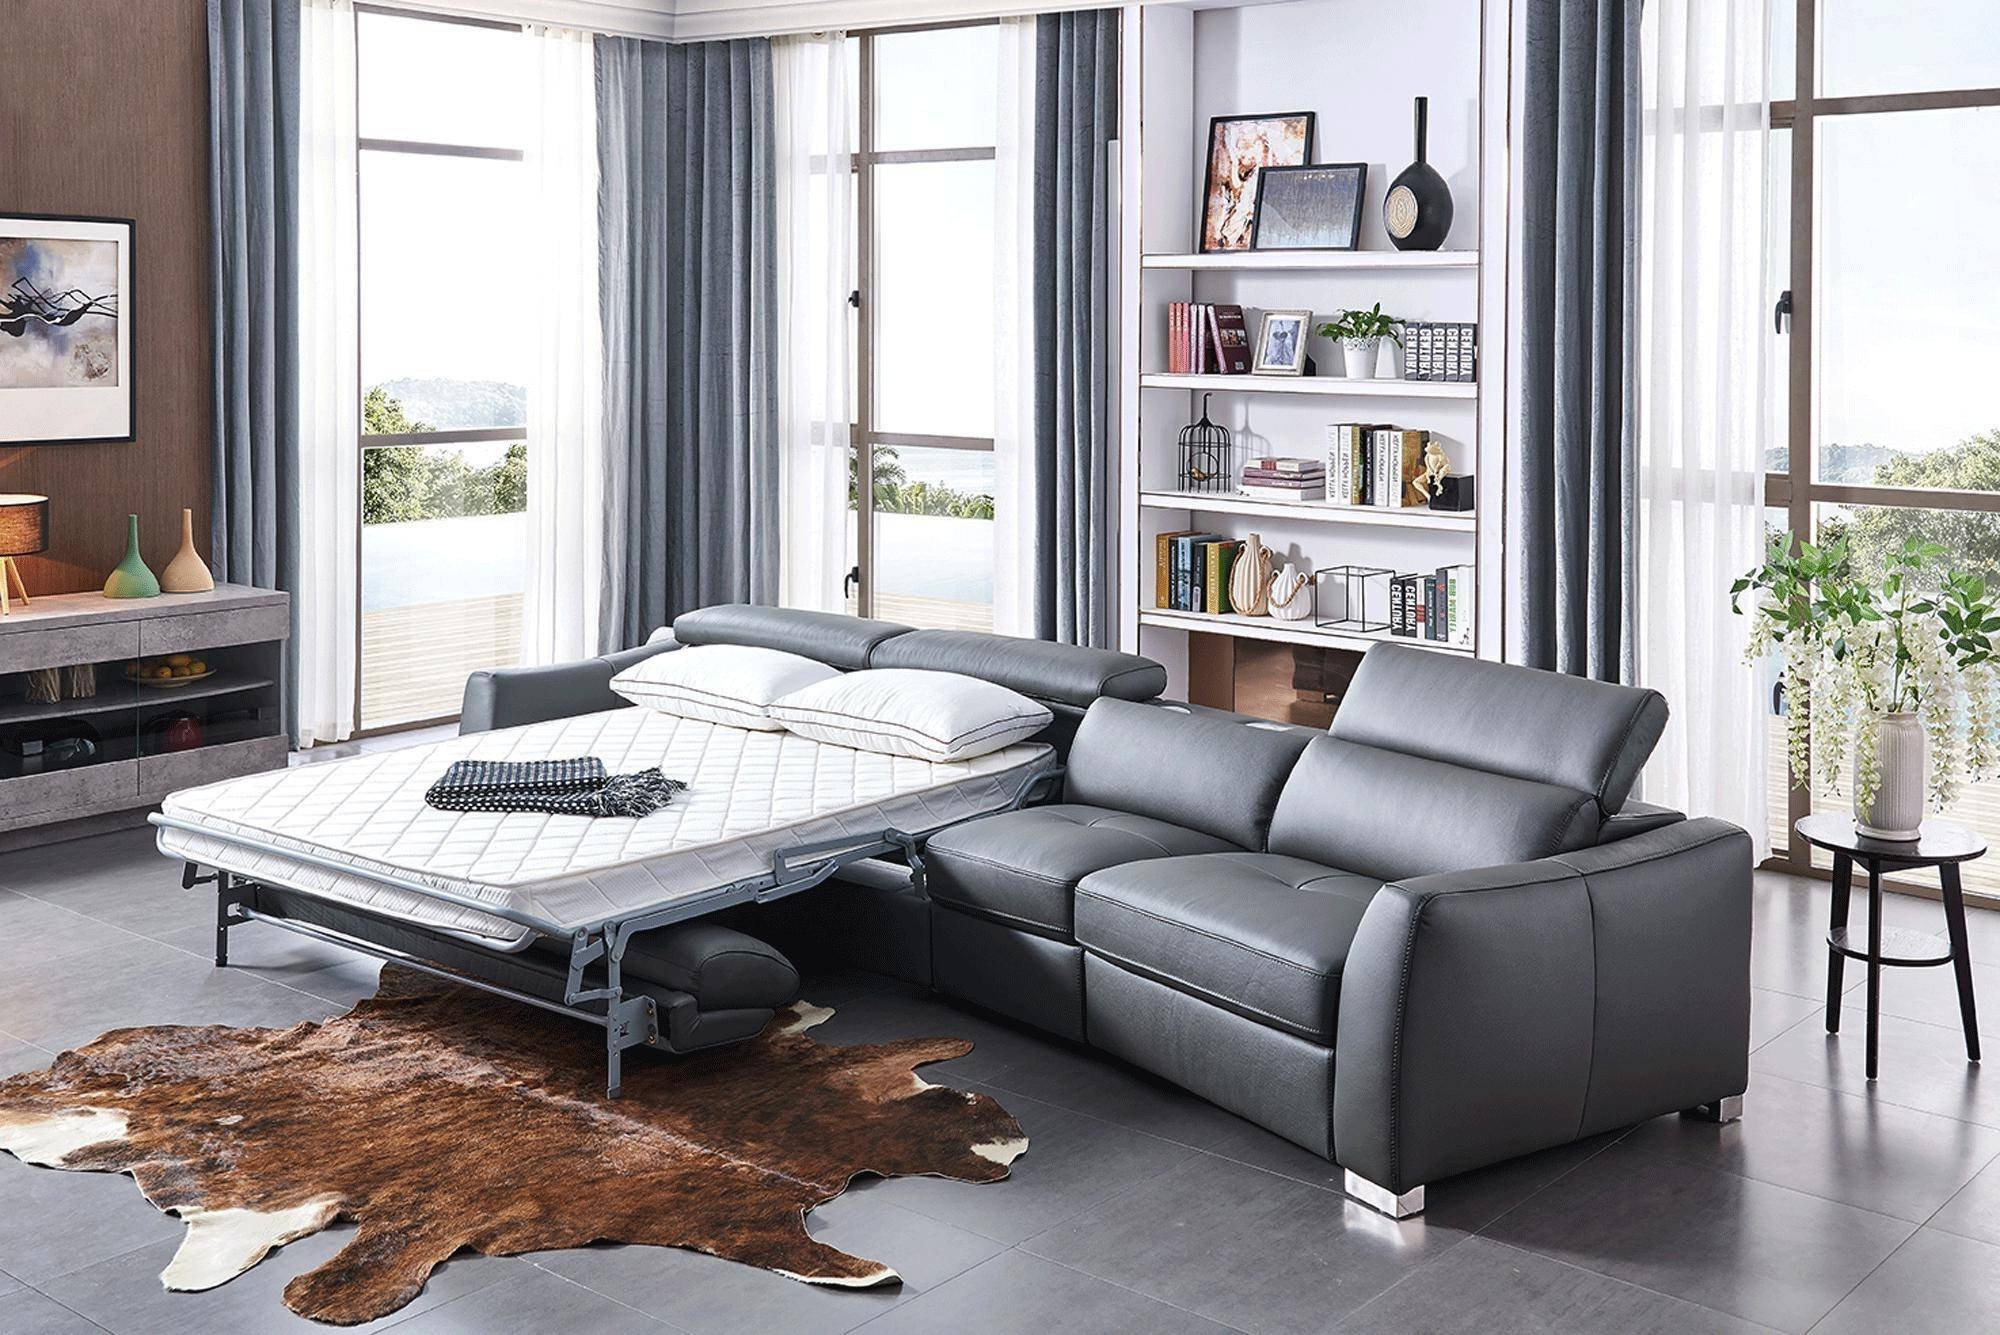 Bedroom Bench with Back Beautiful Esf 312 Dark Grey Sectional W Bed and Electric Recliner